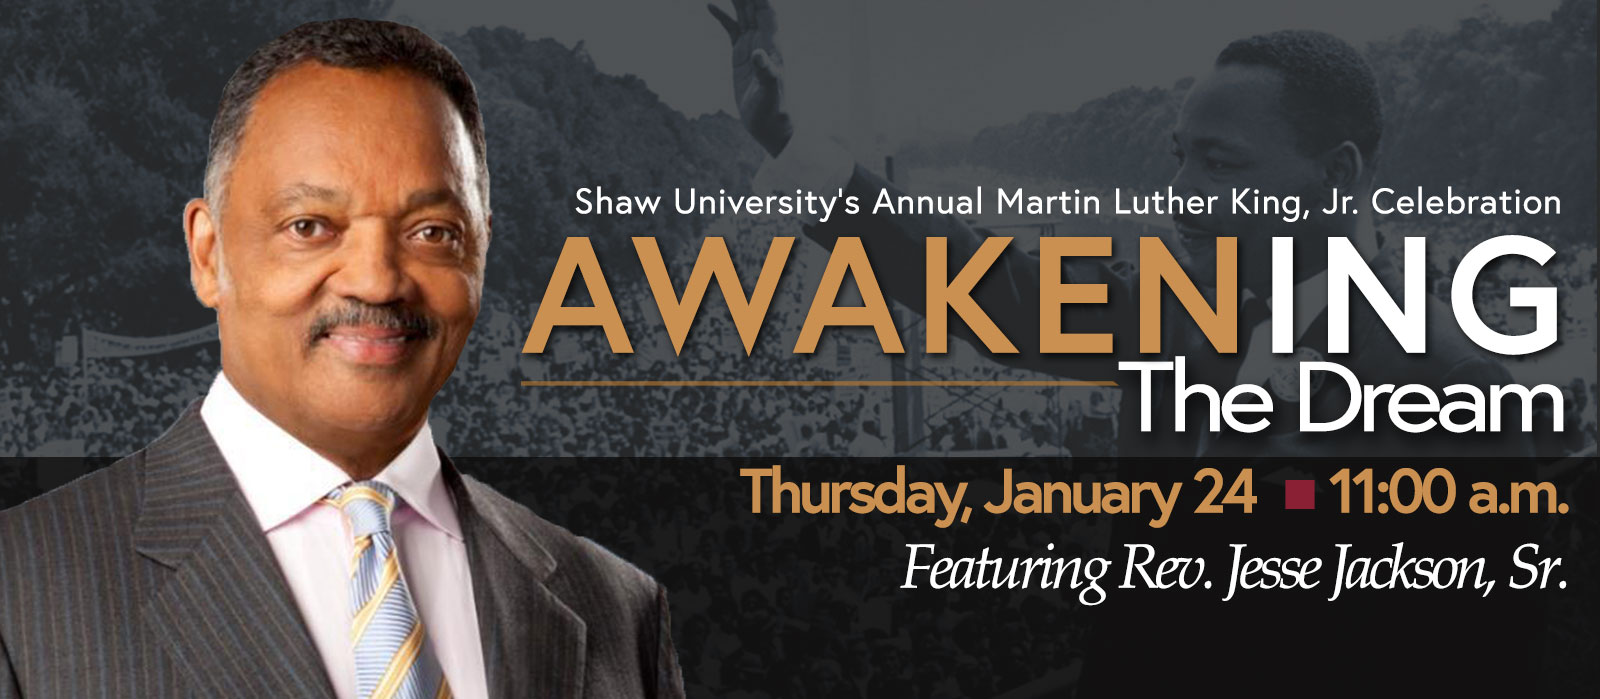 Annual Martin Luther King Jr., Celebration - Jan. 24